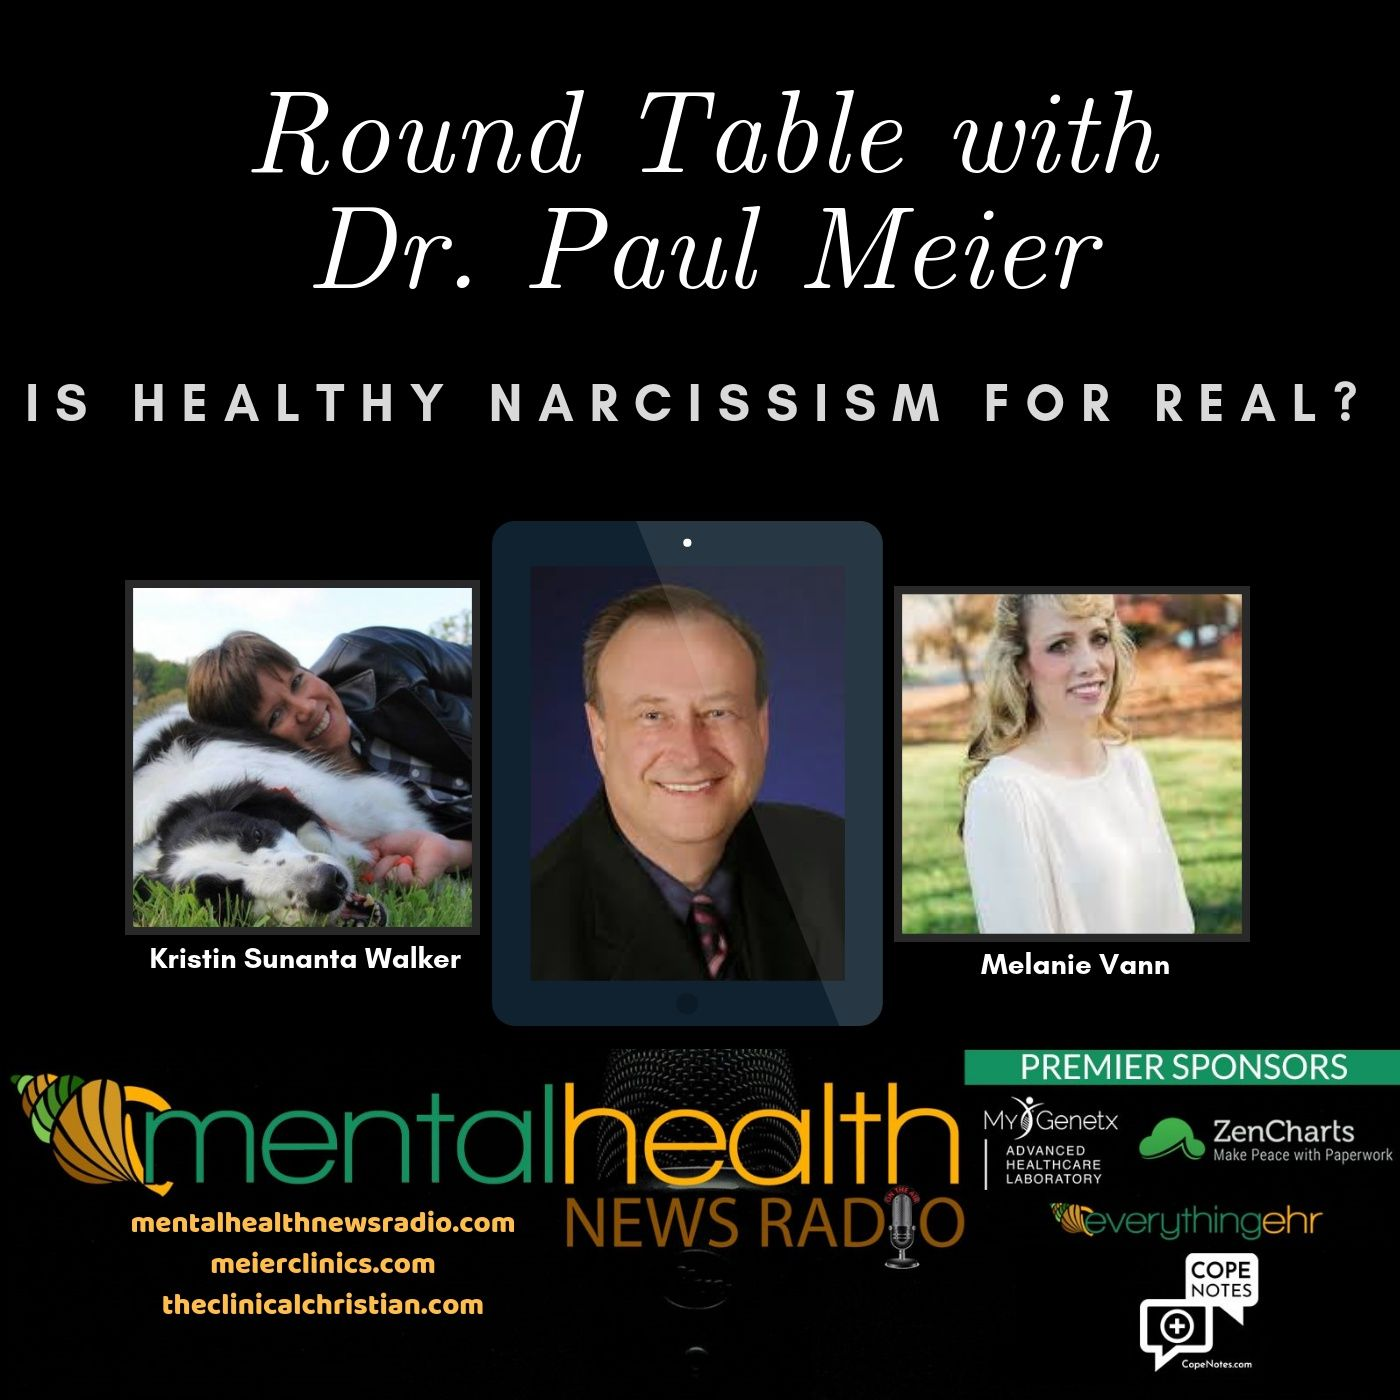 Mental Health News Radio - Round Table with Dr. Paul Meier: Is Healthy Narcissism for Real?